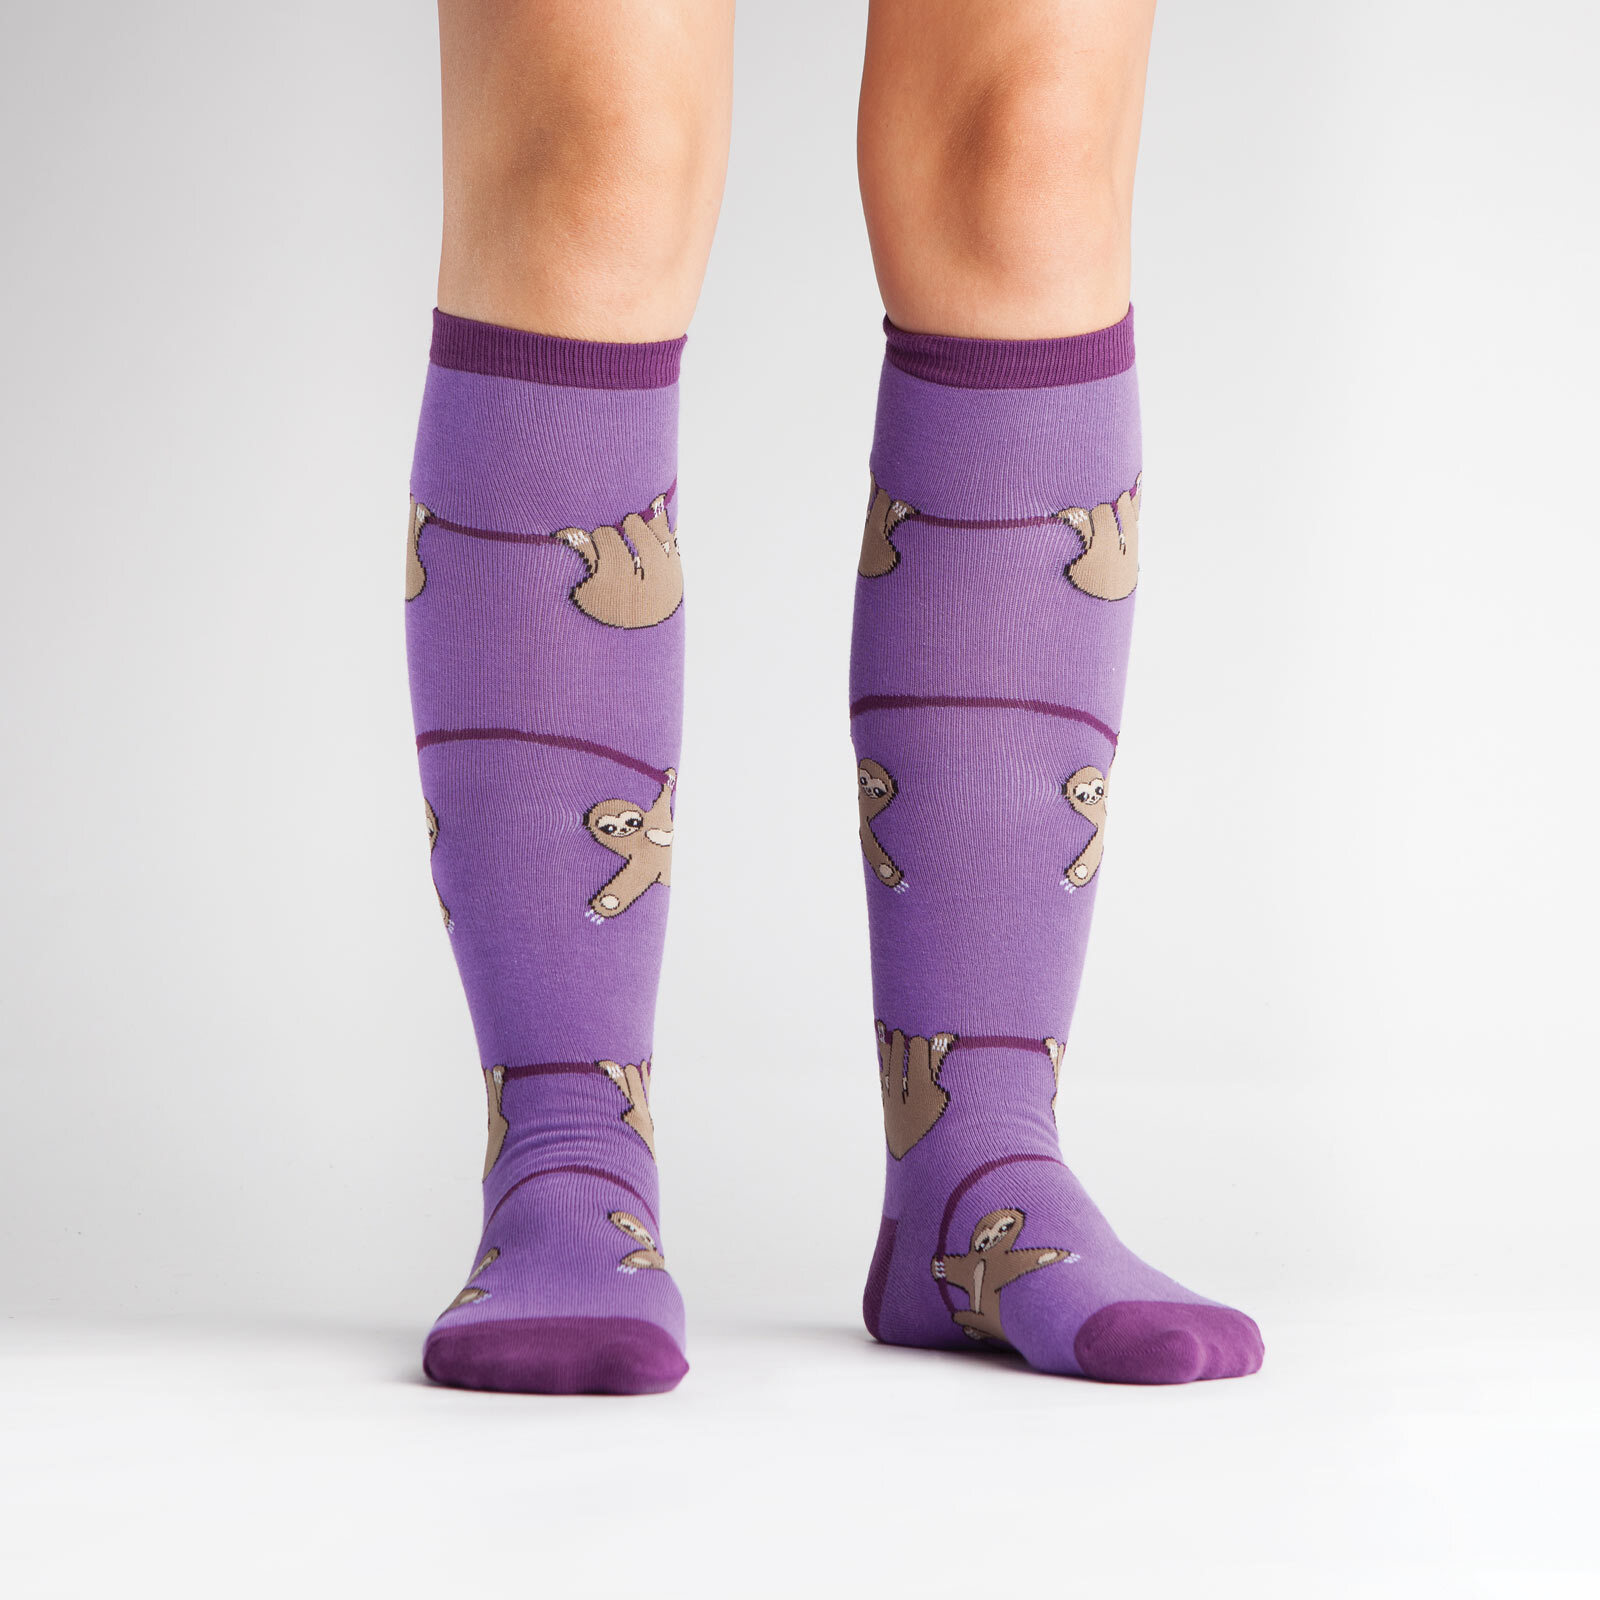 model wearing Sloth Knee High Socks Purple - Women's